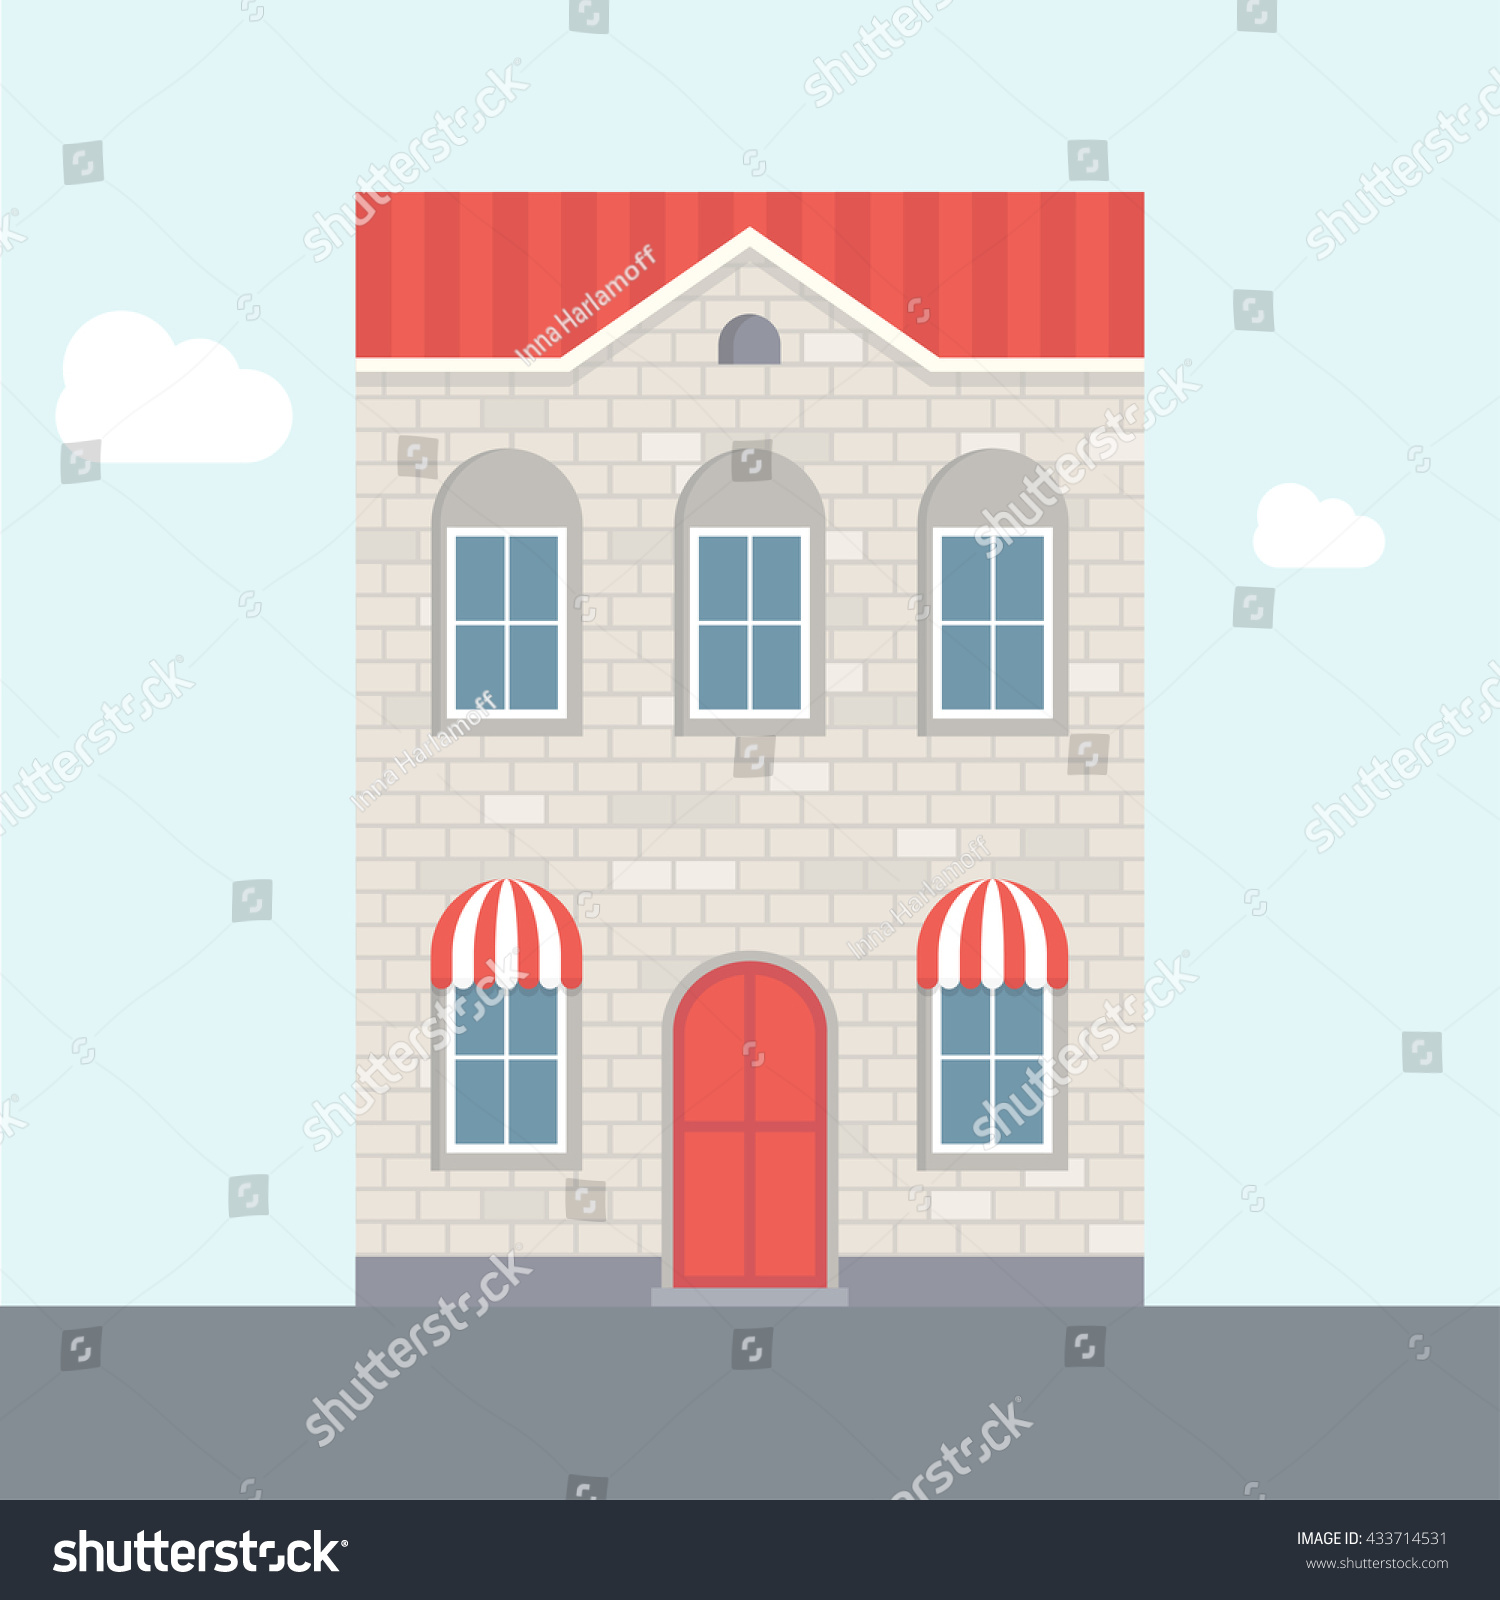 Vector Illustration Of House. Two Storey House. Brick House With Red Roof.